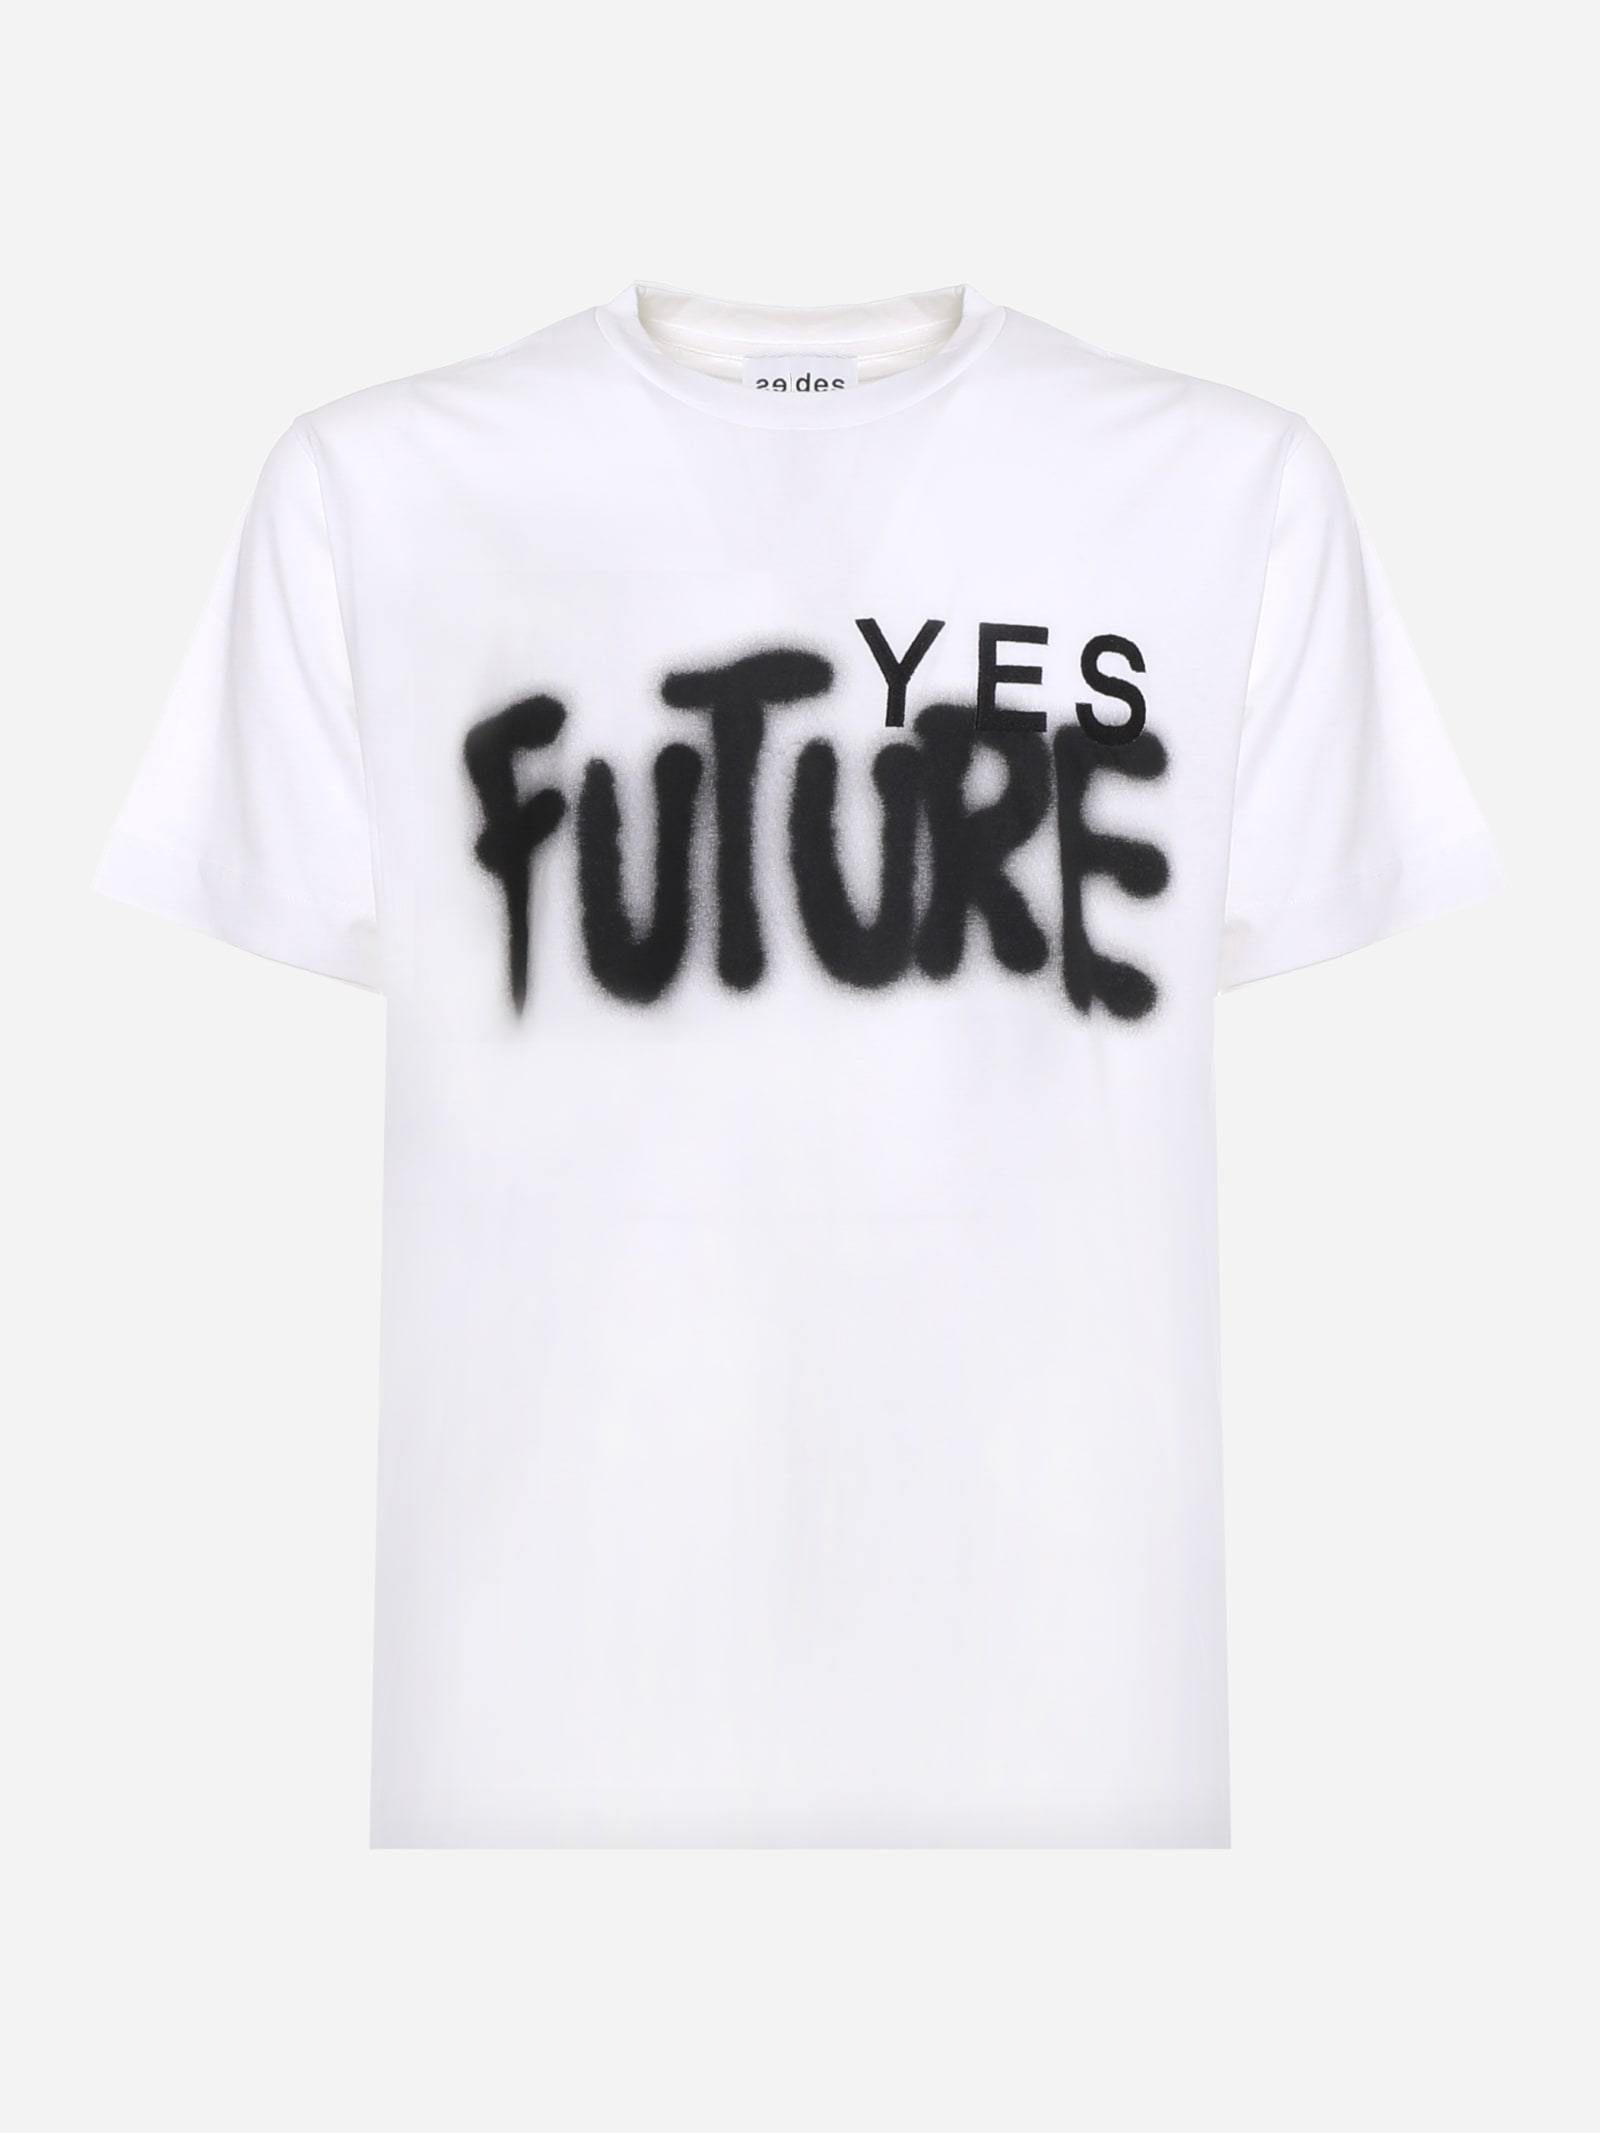 Études Cotton T-shirt With Contrasting Yes Future Print